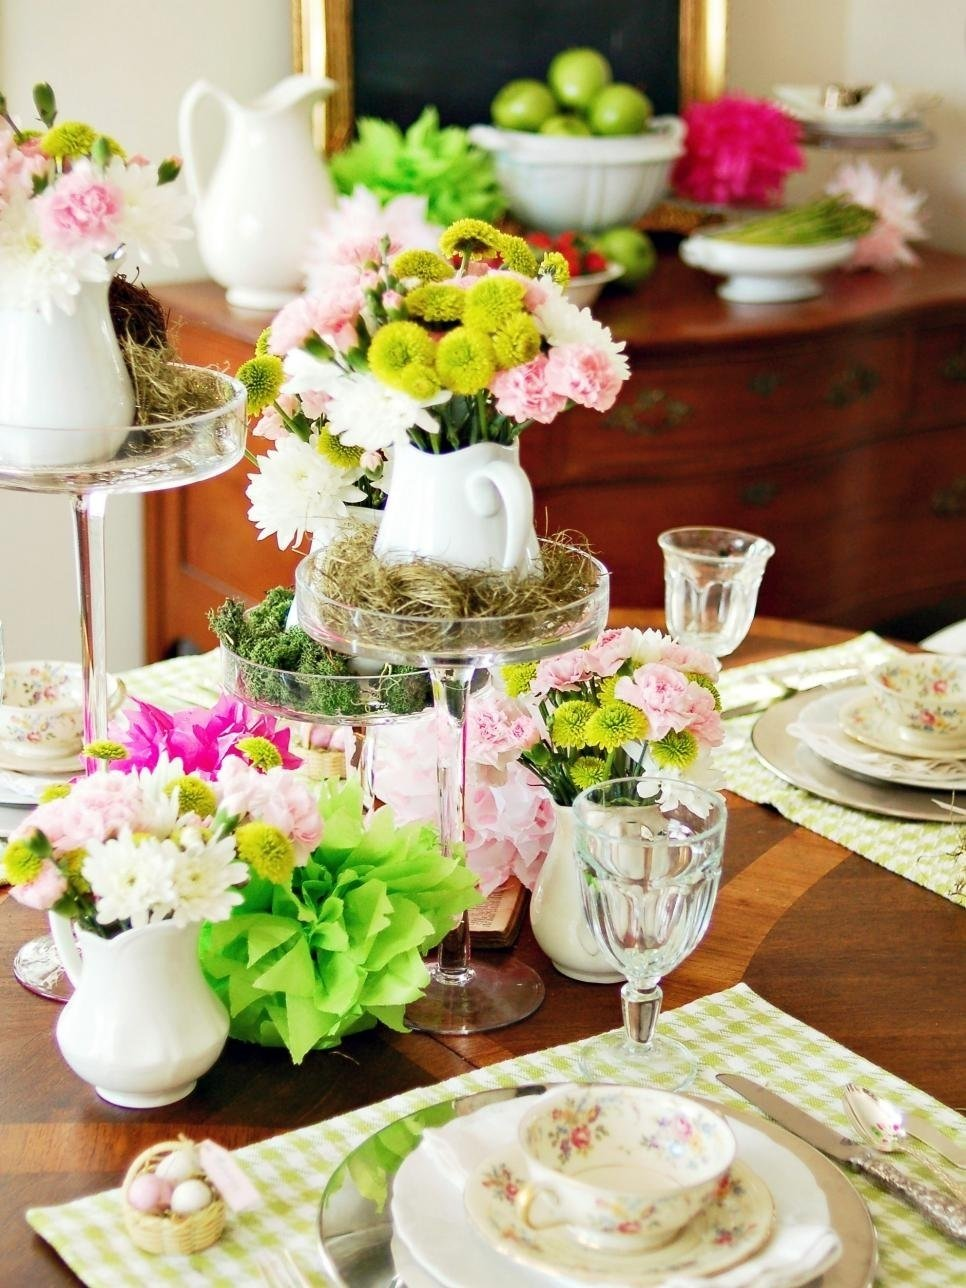 10 Lovely Spring Party Ideas For Adults spring party themes for adults elegant garden wedding ideas shoes 2020